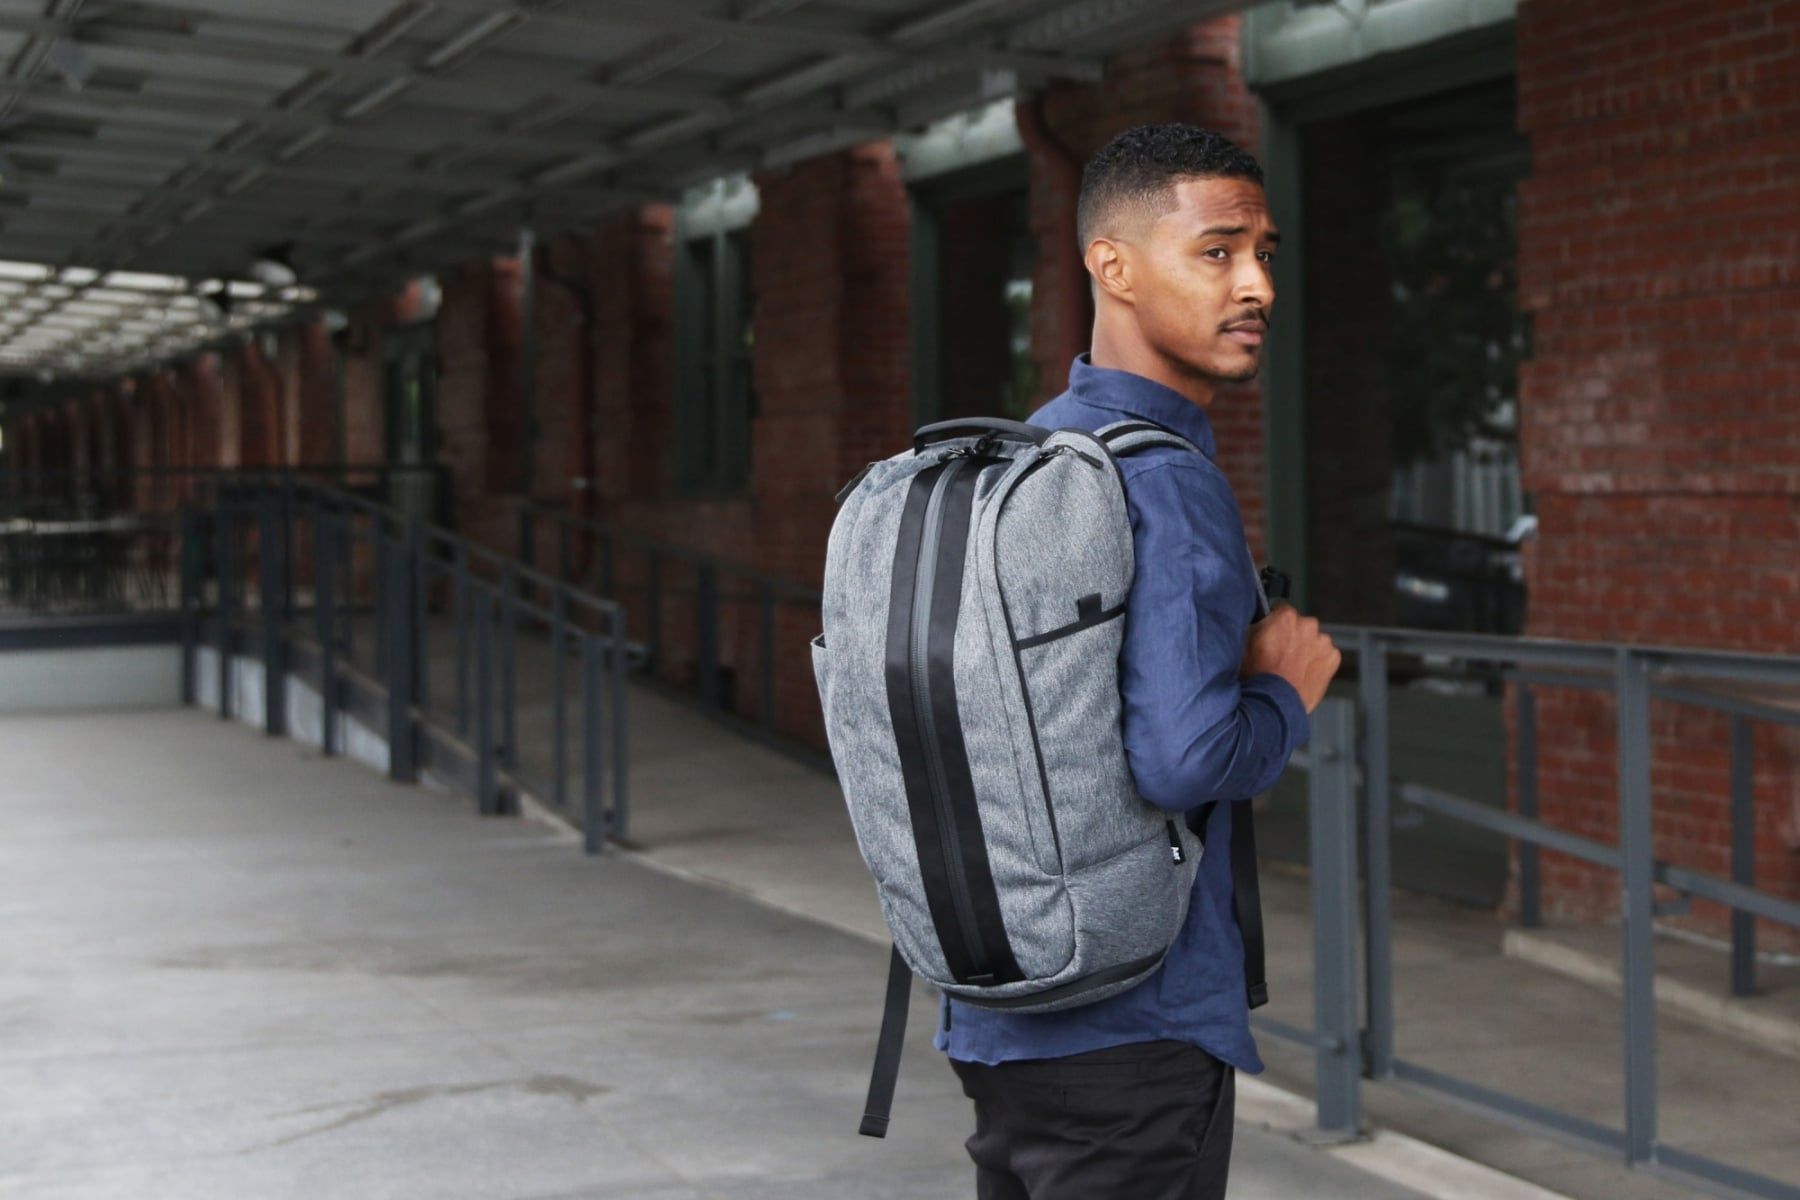 the aer brand bag carrying a man